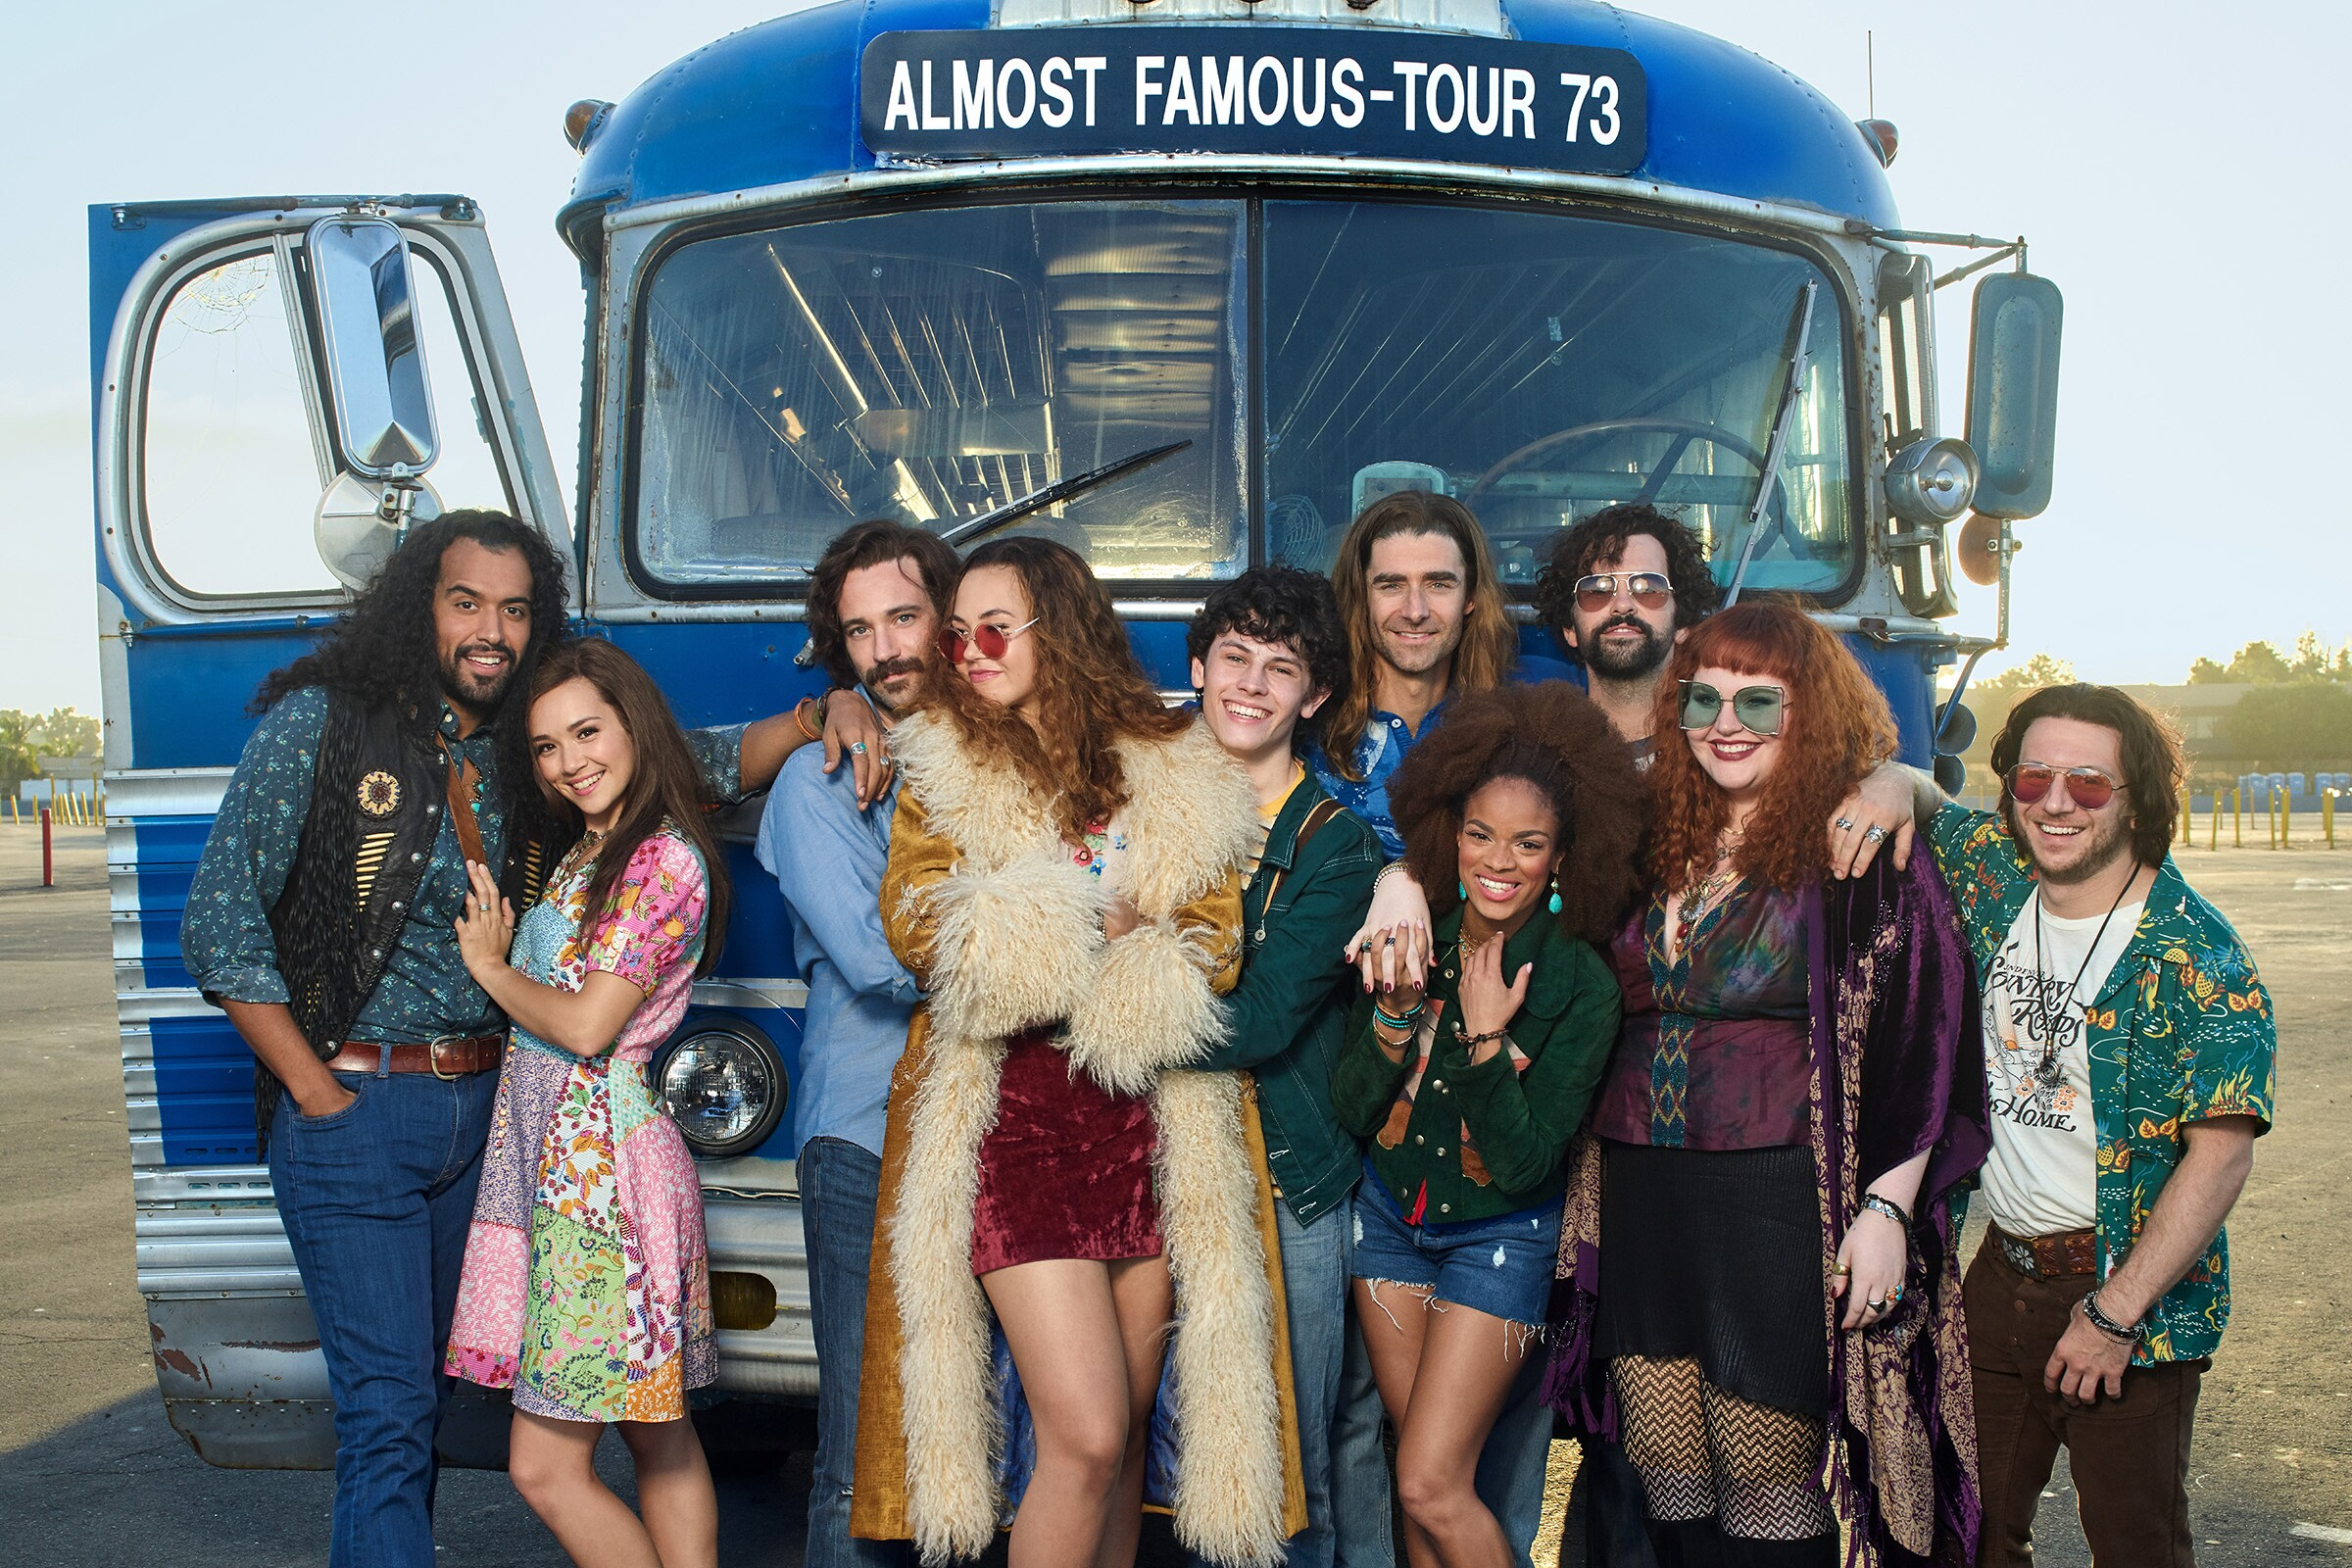 """Members of the cast of """"Almost Famous,"""" from left: Brandon Contreras as Silent Ed Vallencourt, Julia Cassandra as Estrella, Colin Donnell as Russell Hammond, Solea Pfeiffer as Penny Lane, Casey Likes as William Miller, Drew Gehling as Jeff Bebe, Storm Lever as Polexia, Matt Bittner as Larry Fellows, Katie Ladner as Sapphire, and Gerard Canonico as Dick Roswell; from Almost Famous, a world-premiere musical with book and lyrics by Cameron Crowe, based on his iconic film; directed by Jeremy Herrin, with original music and lyrics by Tom Kitt; runs September 13 – October 27, 2019 at The Old Globe."""